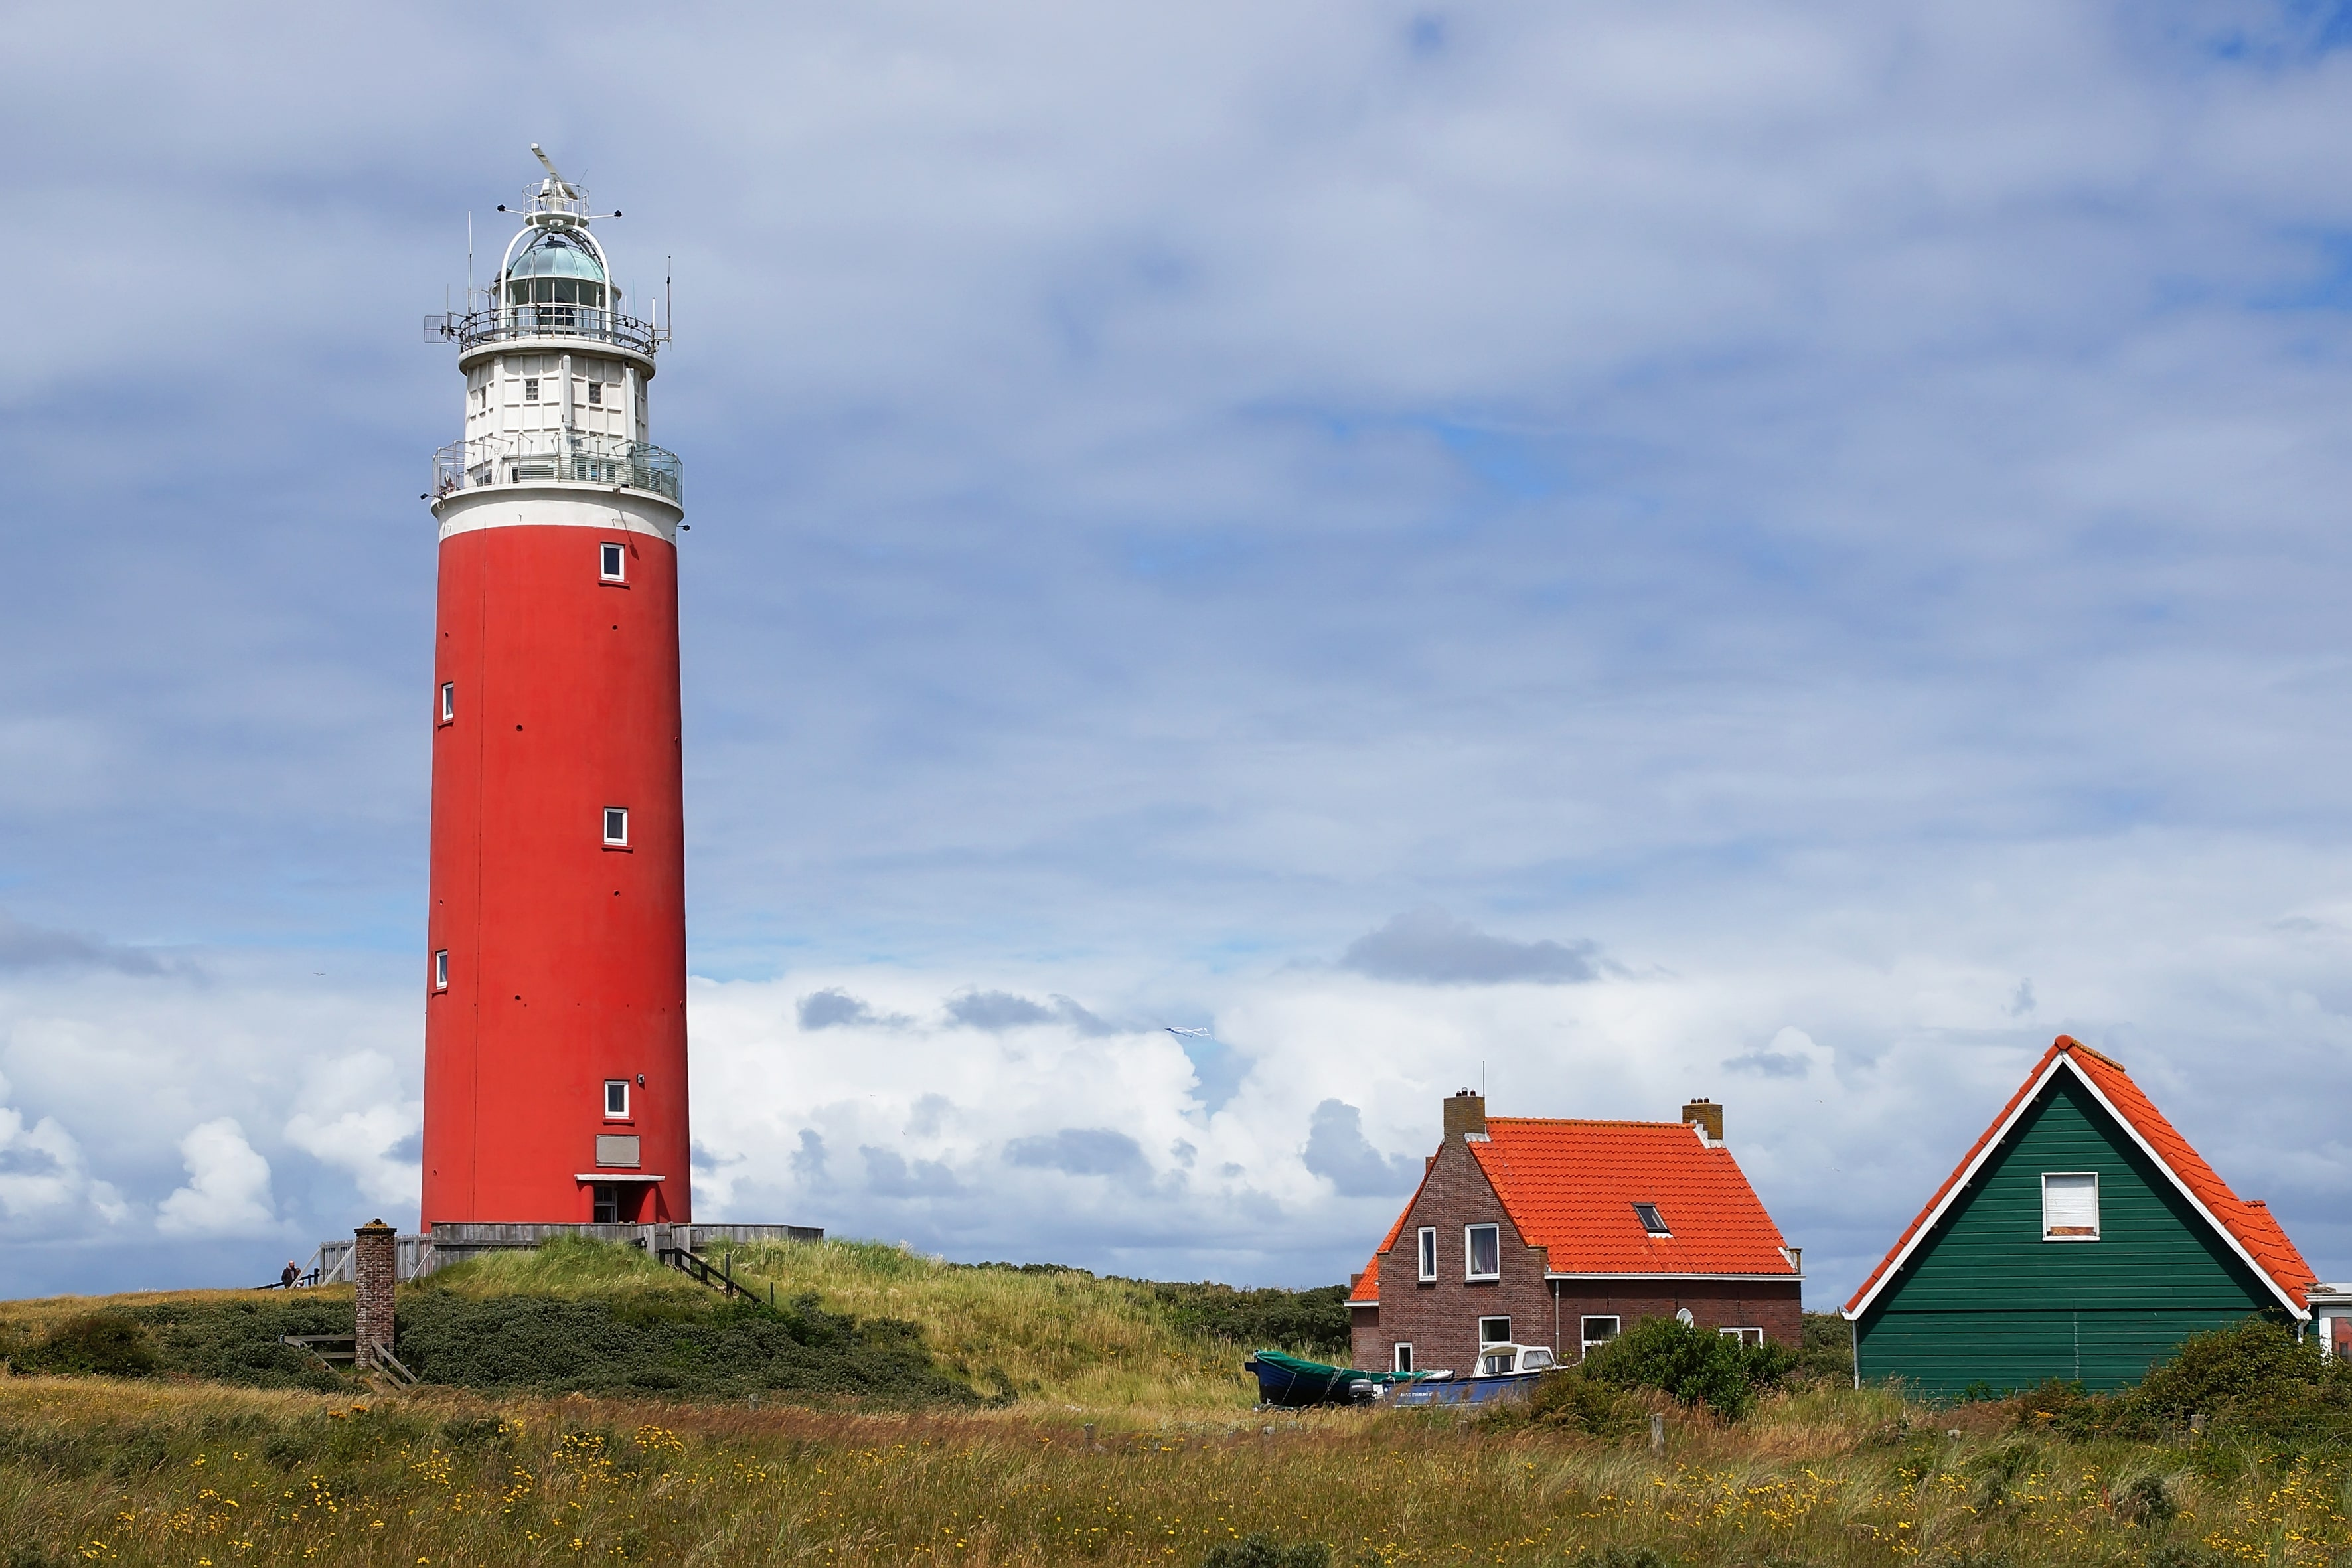 One of the lighthouses at Texel, Frisian Islands